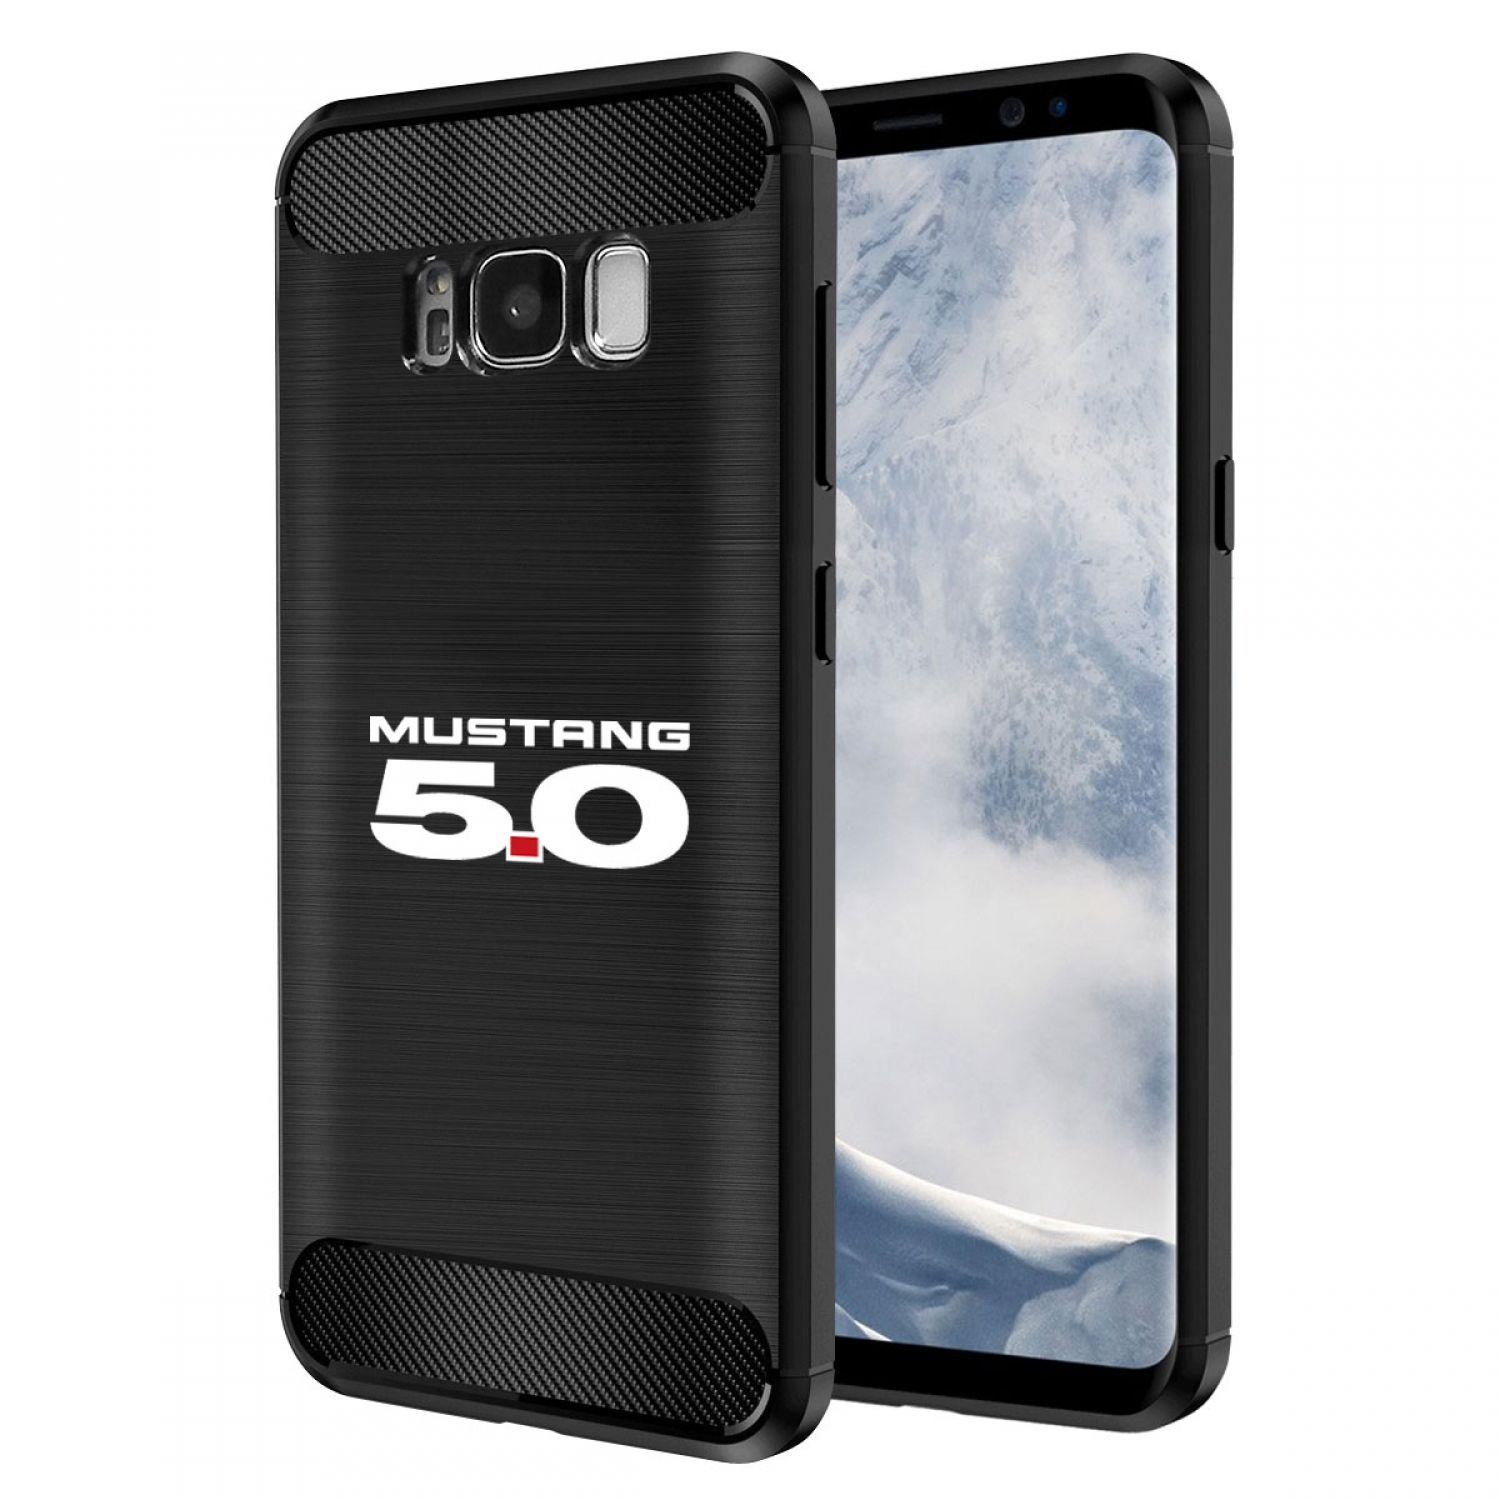 Galaxy S8 Case, Ford Mustang 5.0 TPU Shockproof Black Carbon Fiber Textures Stripes Cell Phone Case